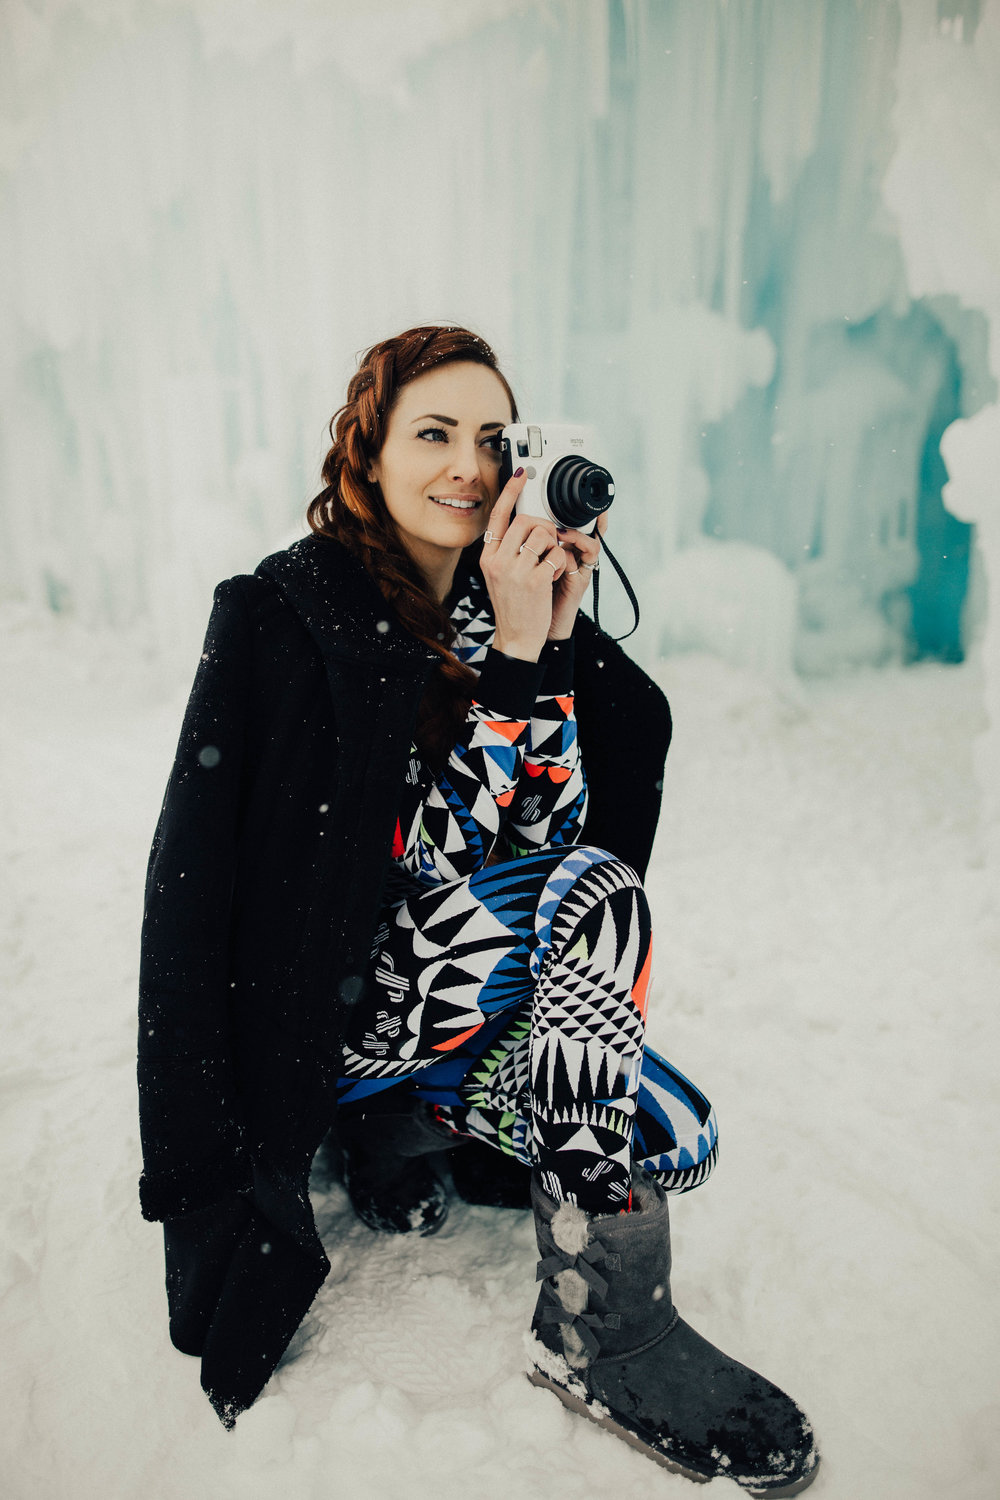 @Jackie_Welling using her Fujfilm Instax mini 70 at the Ice Castles in Utah.